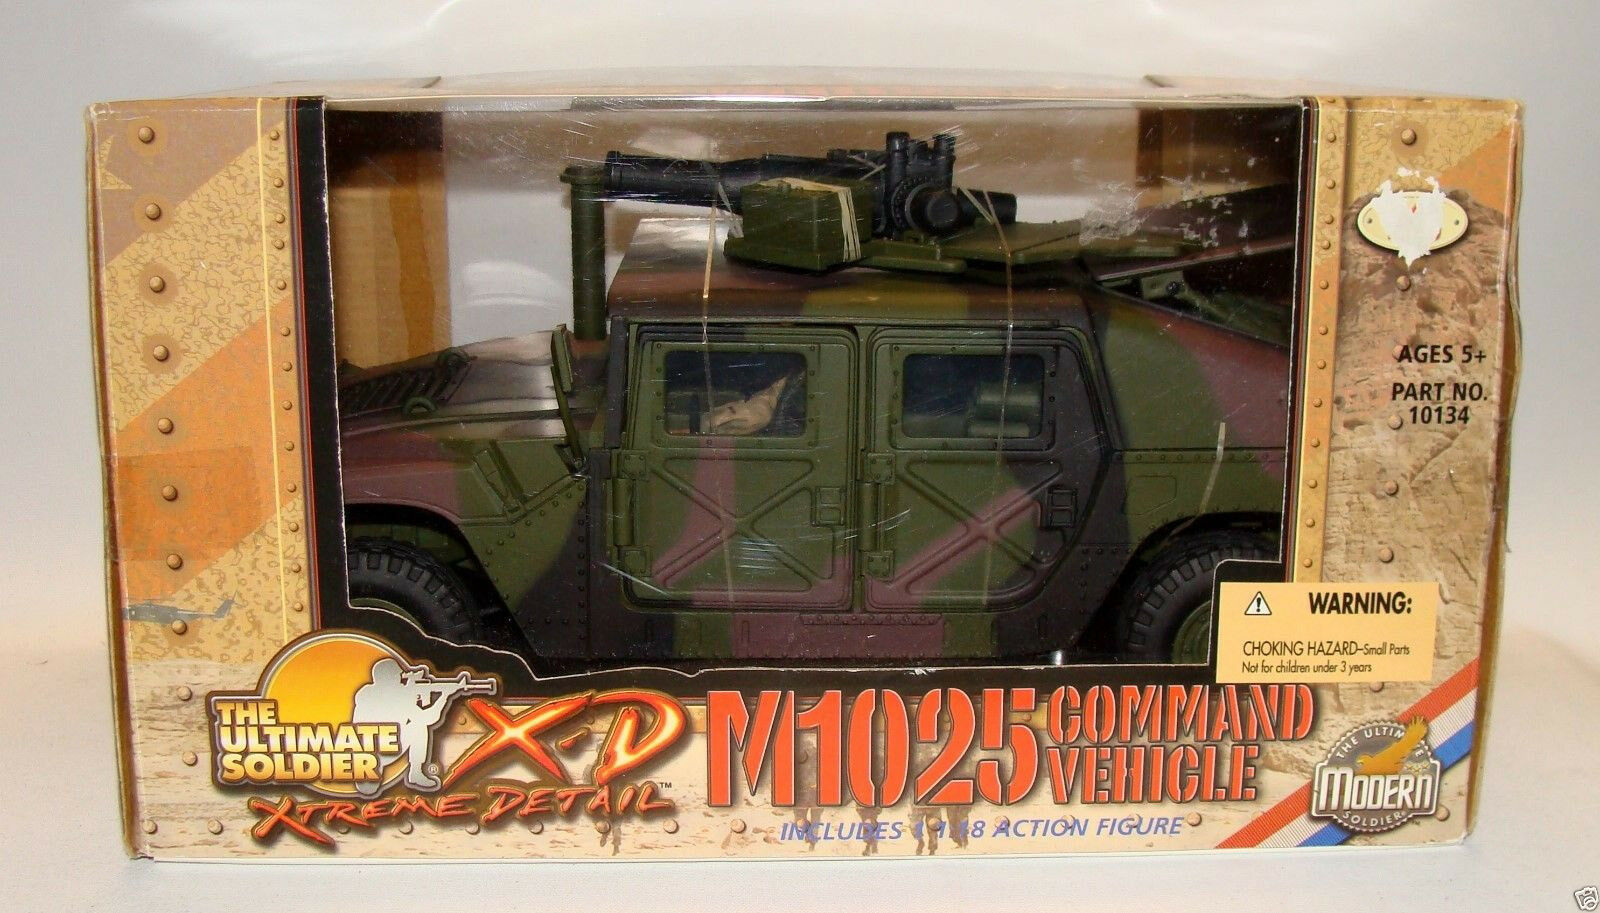 21st Century The Ultimate Soldier M1025 Command Vehicle 1 18 Incl Action figure